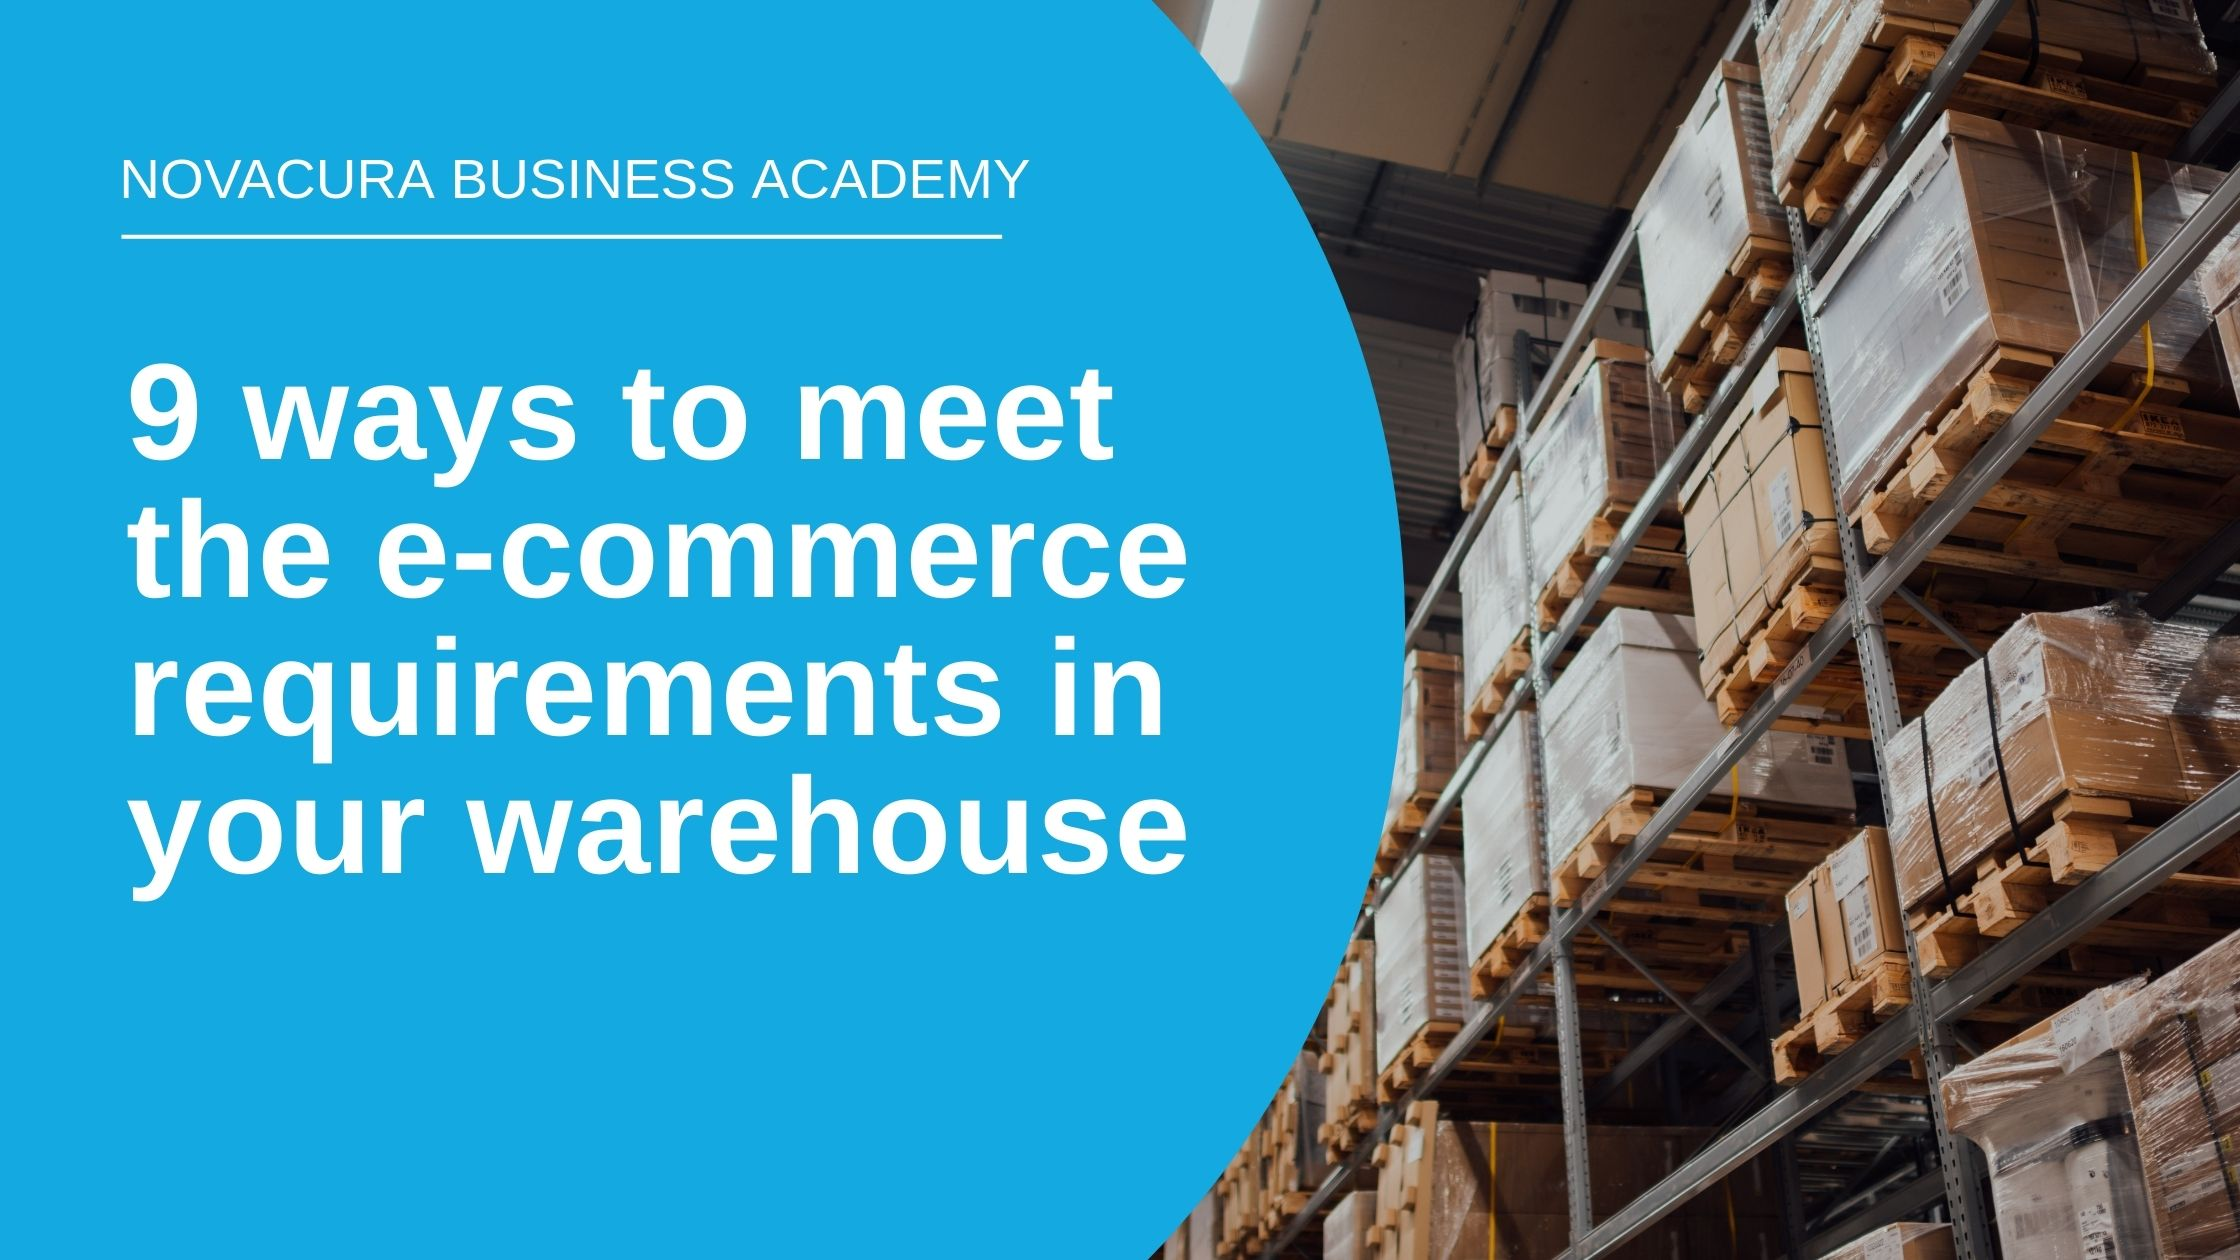 9 ways to meet the e-commerce requirements in your warehouse